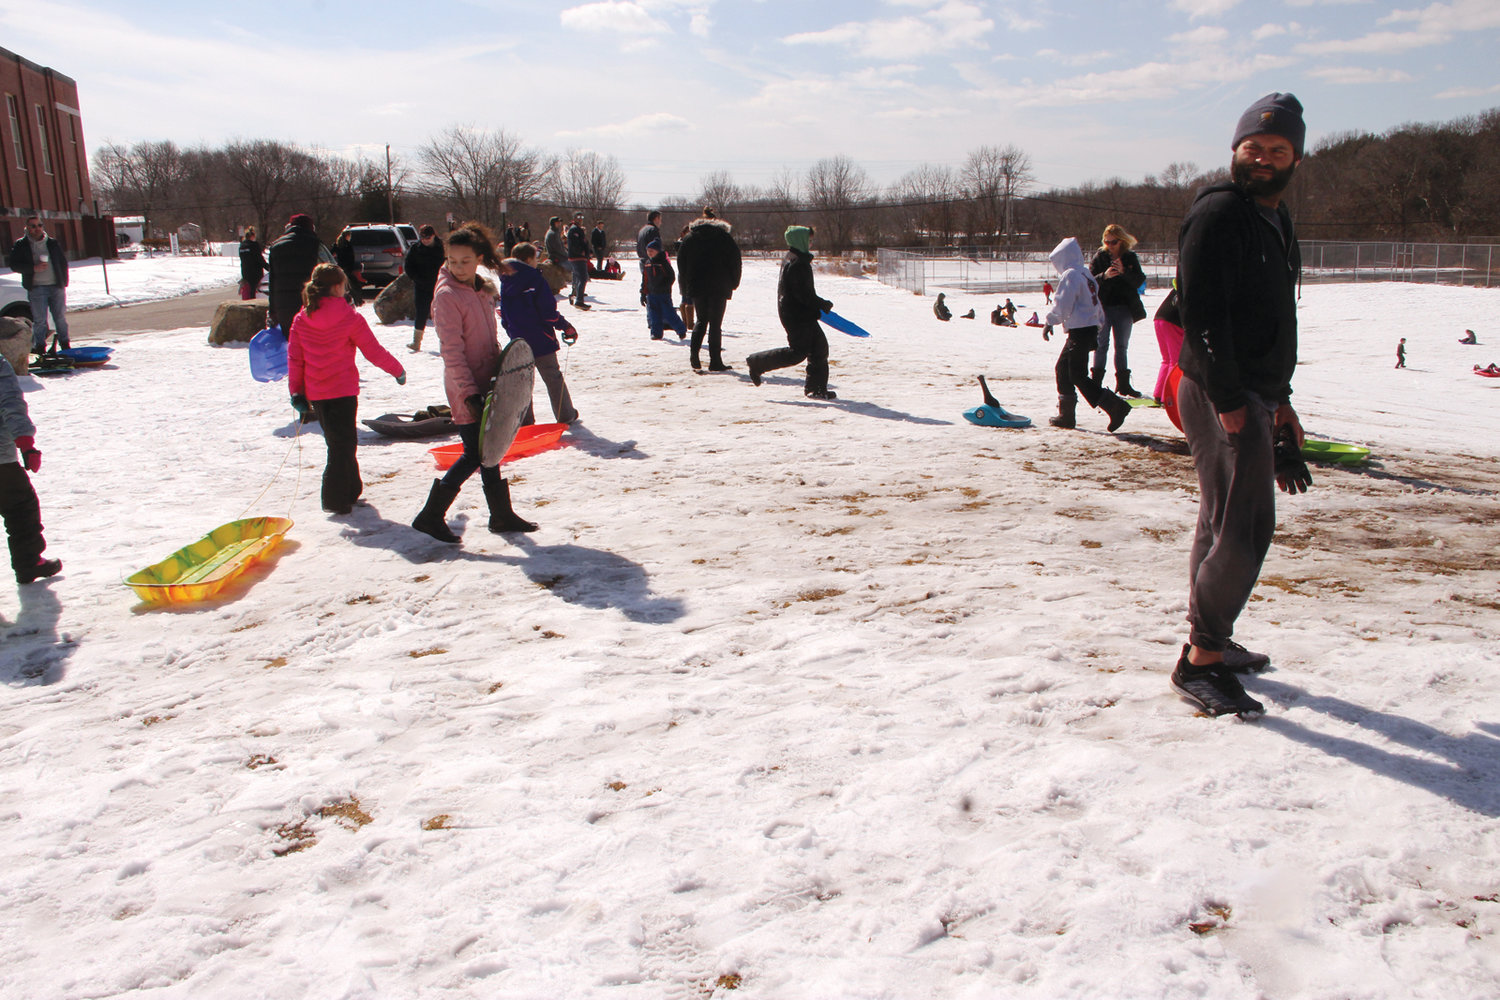 ALPS OF LONGMEADOW: The Gorton slope was busy Saturday as ideal weather made for some great sledding.